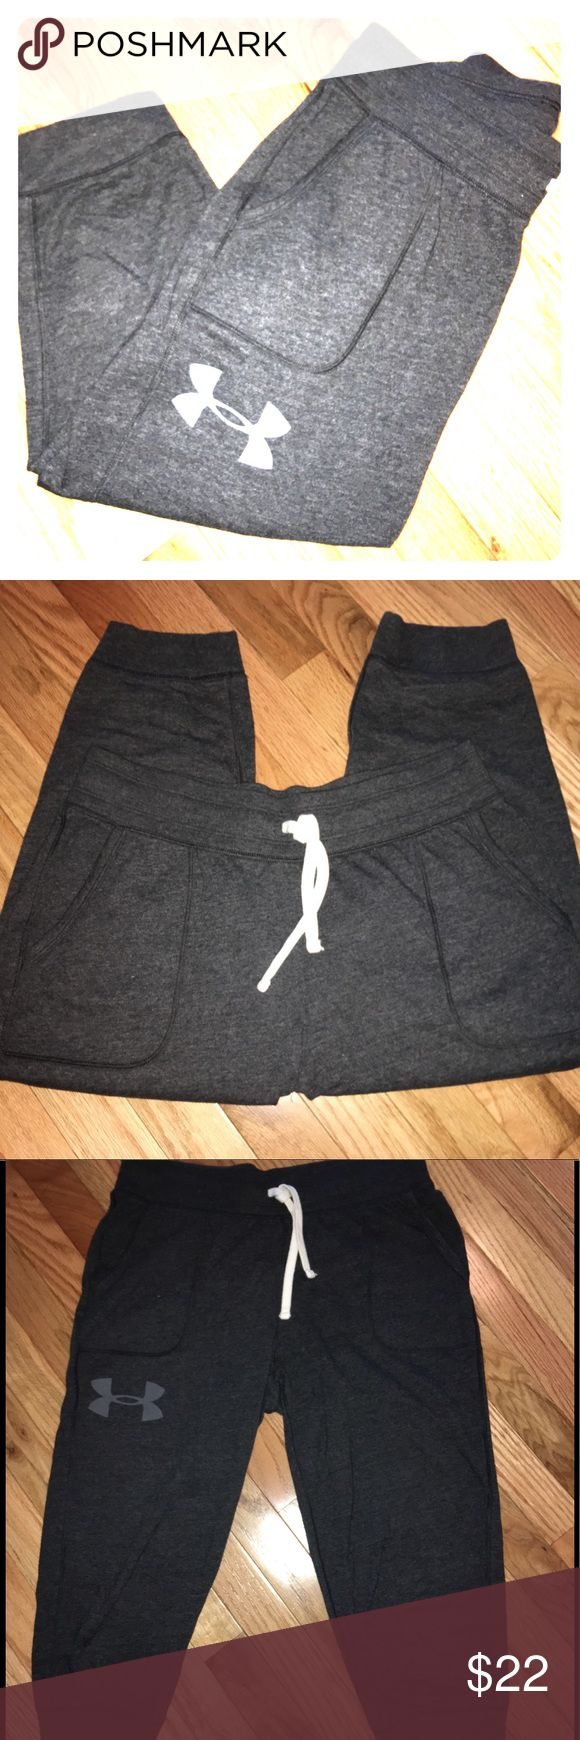 """Under Armour Women's Crop Jogger Sweatpants Color: Dark Grey Size: Medium Cotton-rich tri-blend fabric has a soft, athletic feel for superior comfort. Signature Moisture Transport System wicks sweat so it dries faster than ordinary cotton. Lightweight stretch construction improves mobility for full range of motion. Anti-odor technology keeps your gear fresher. Stretchy, wide ribbed waistband with external drawcord. Patch front pockets. Ribbed cuff hem. Approx. inseam: 21"""" 55% cotton/34%…"""